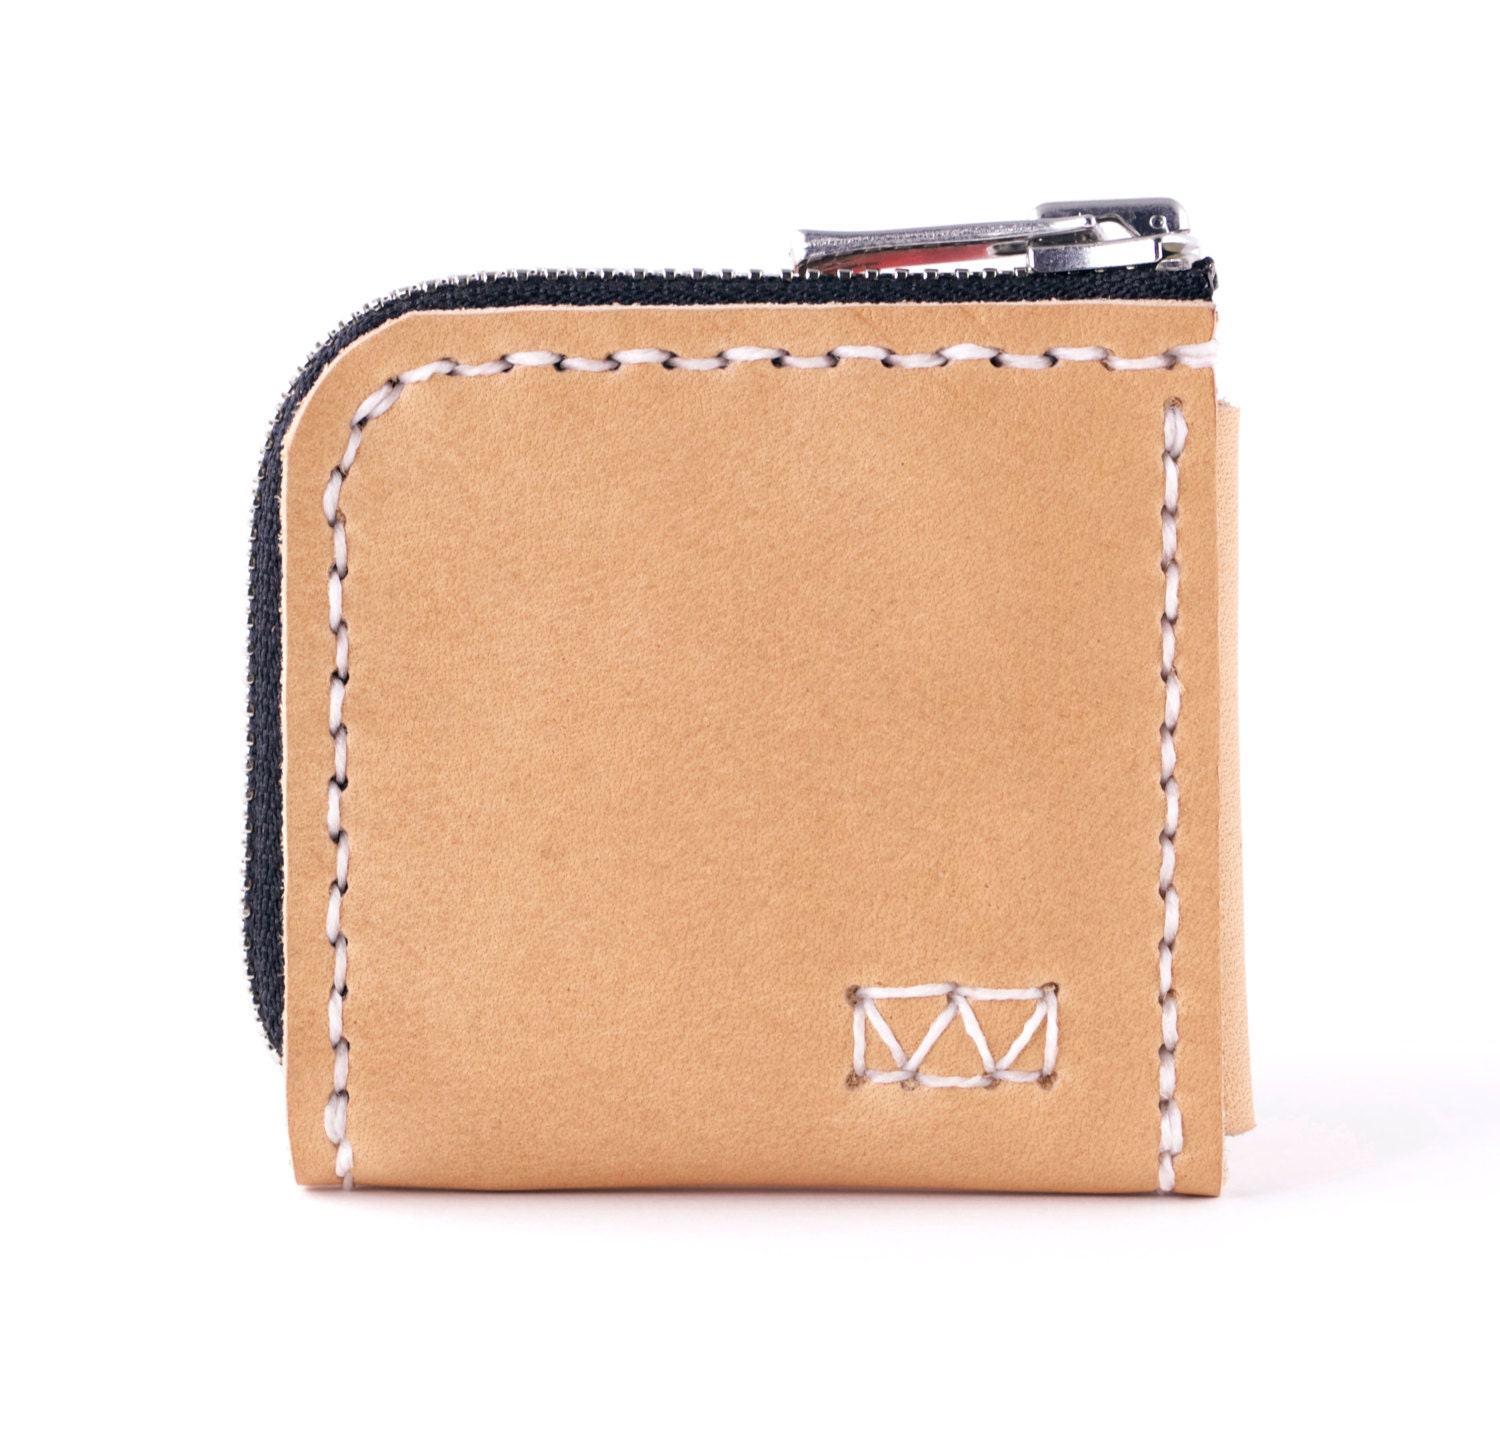 Square Business Card Holder Square Leather Business Card Zip